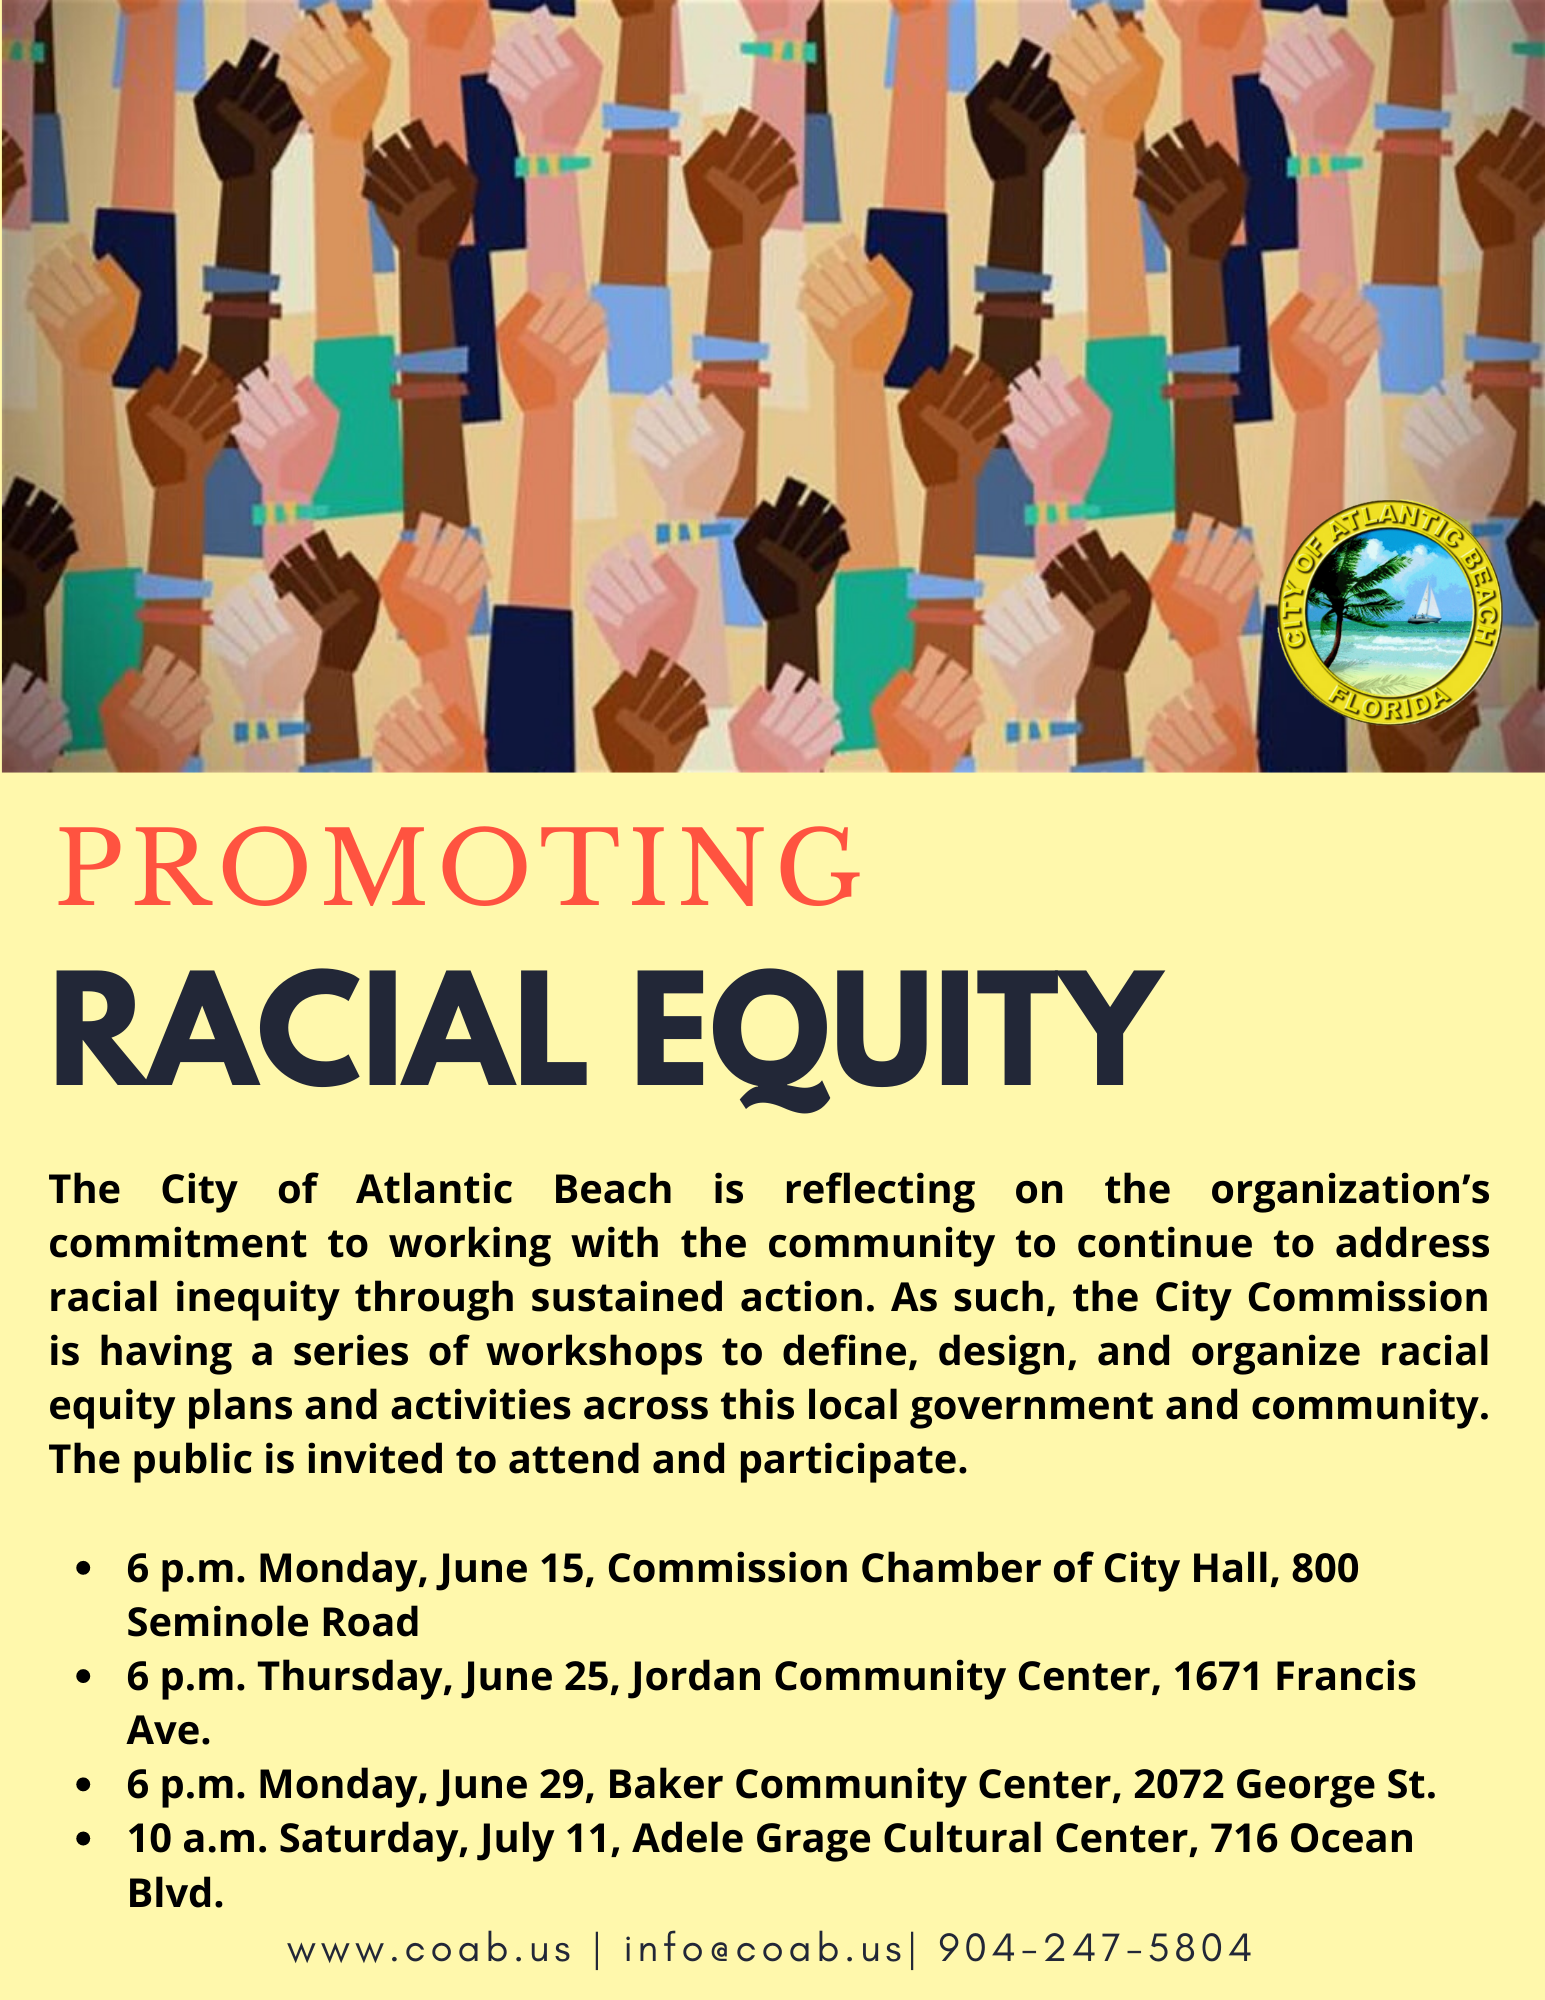 PromotingRacialEquityWorkshops